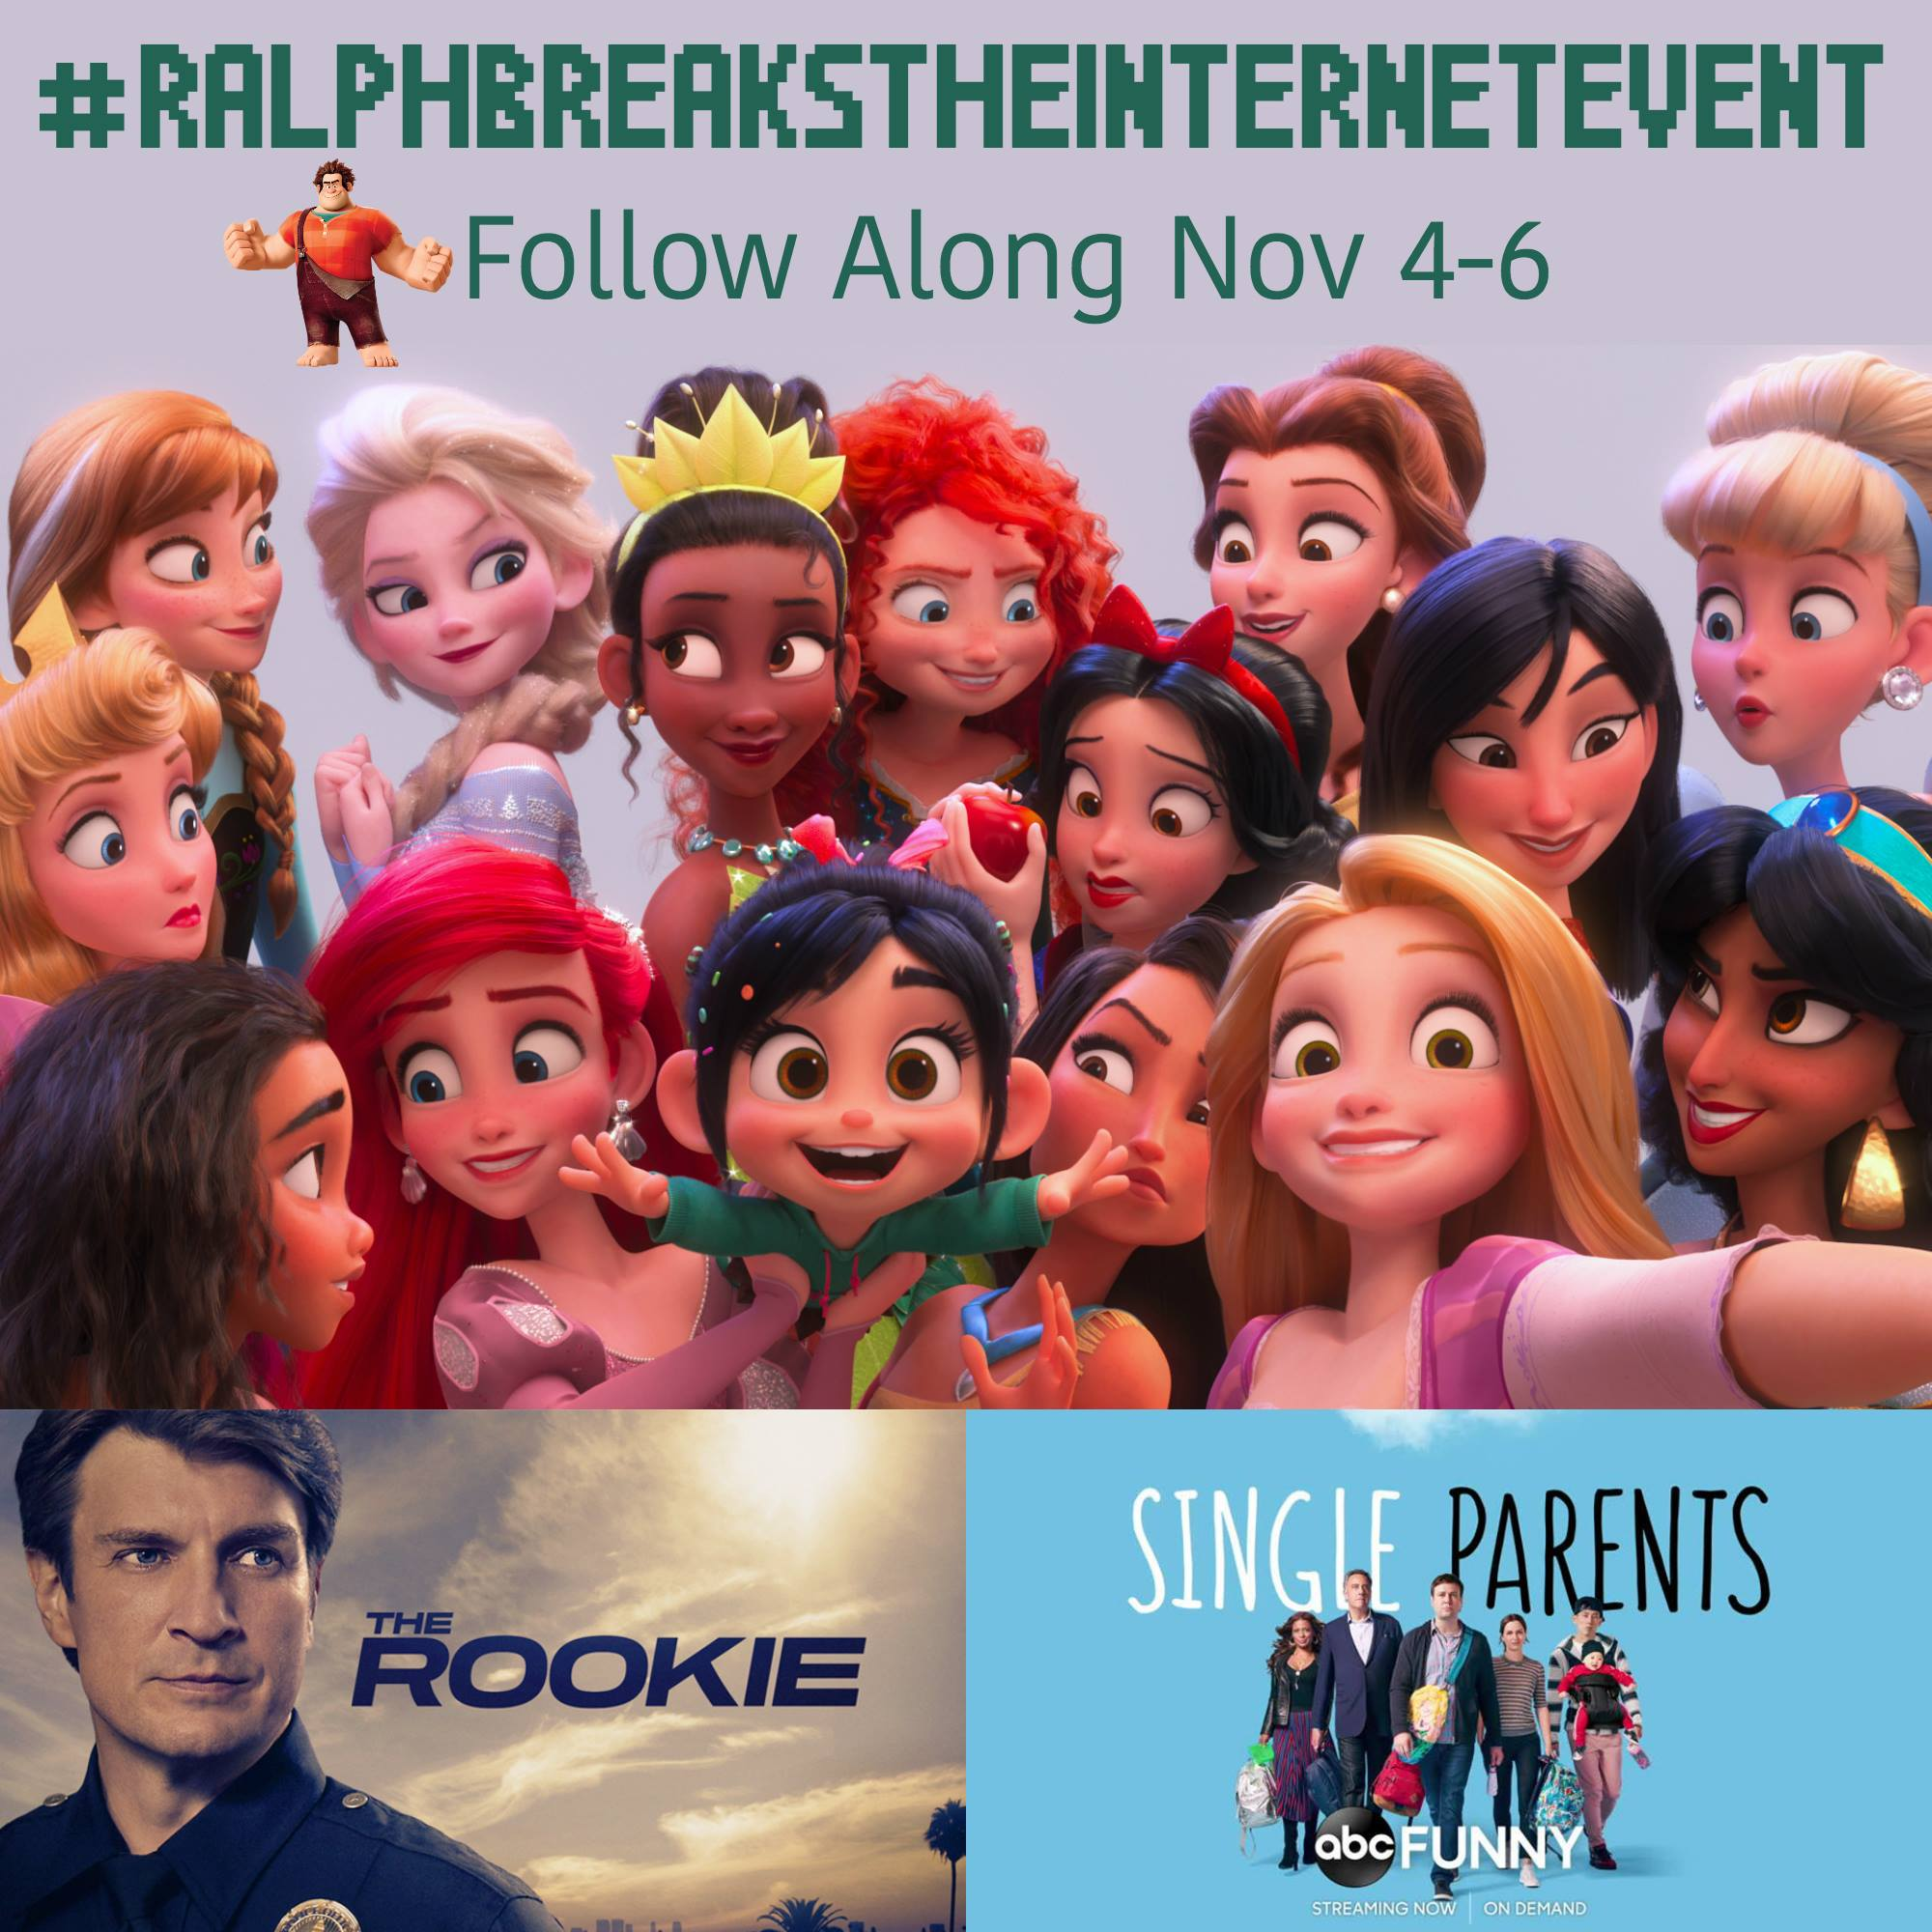 The #RalphBreakstheInternetEvent where bloggers get a chance to walk the red carpet for the premiere, attend exclusive events, and go behind the scenes for new ABC shows Single Parents and The Rookie